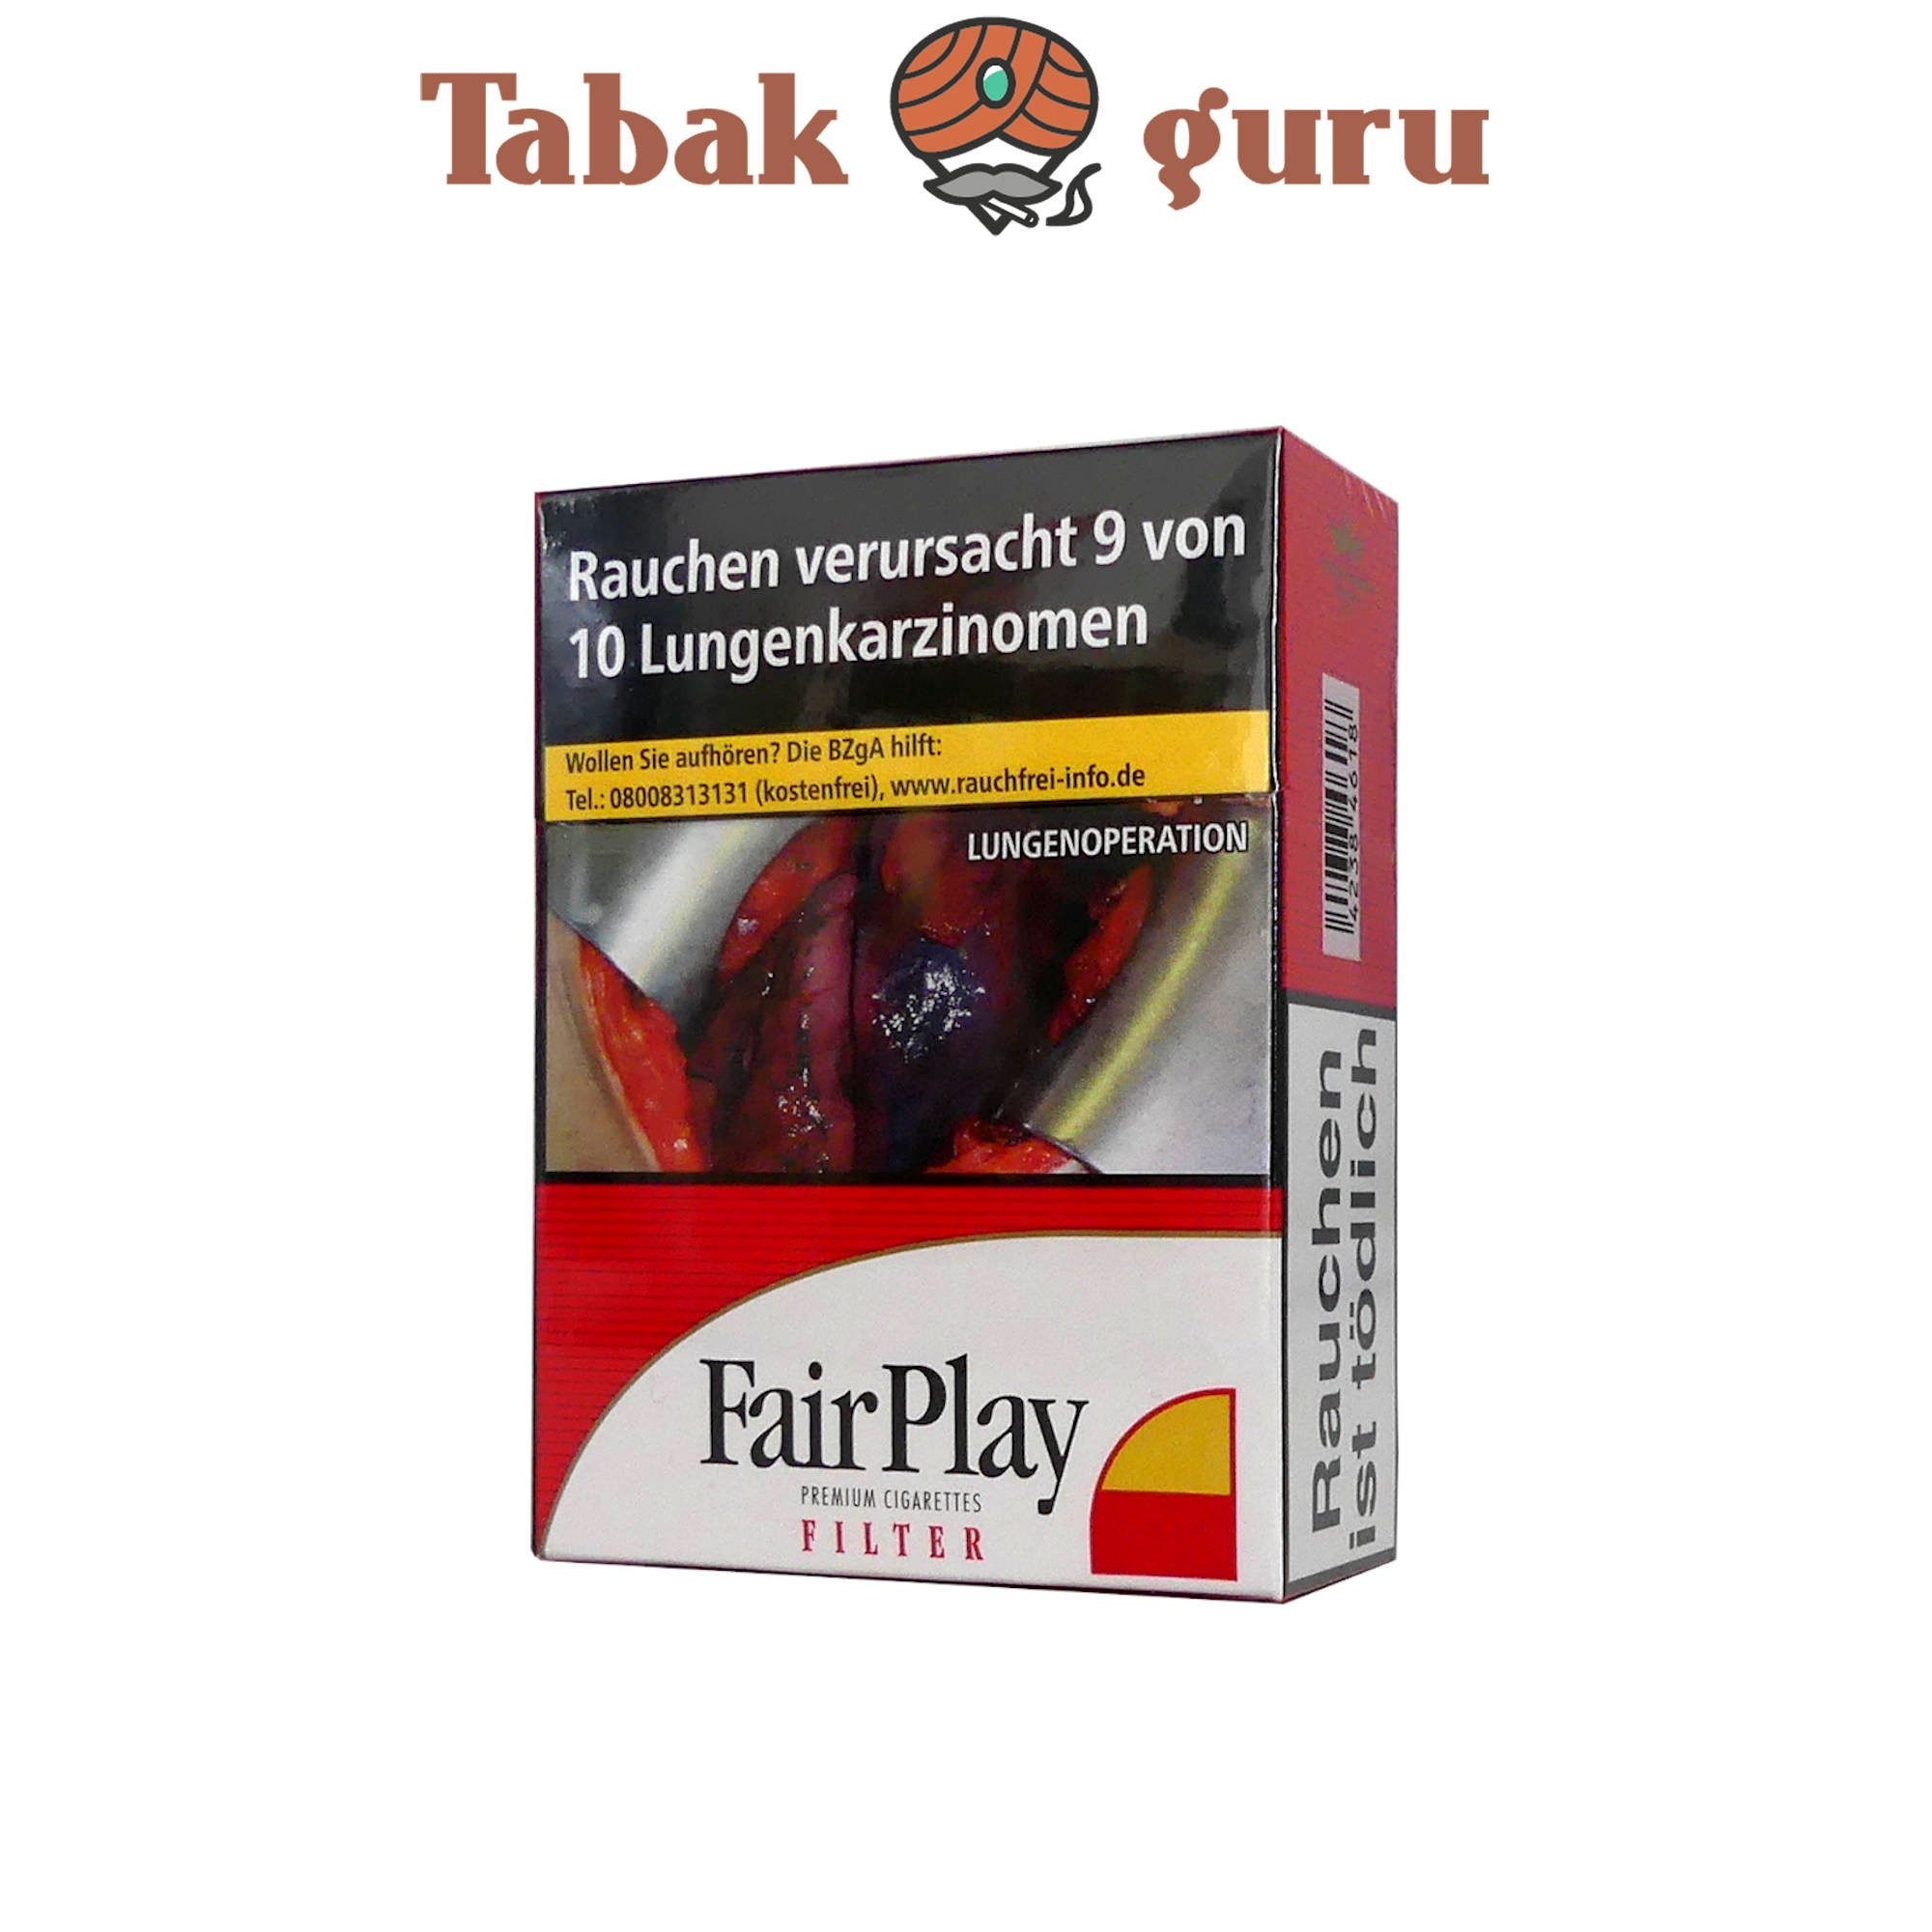 Fair Play Filter Full Flavor Zigaretten XXL Box 26 Stück